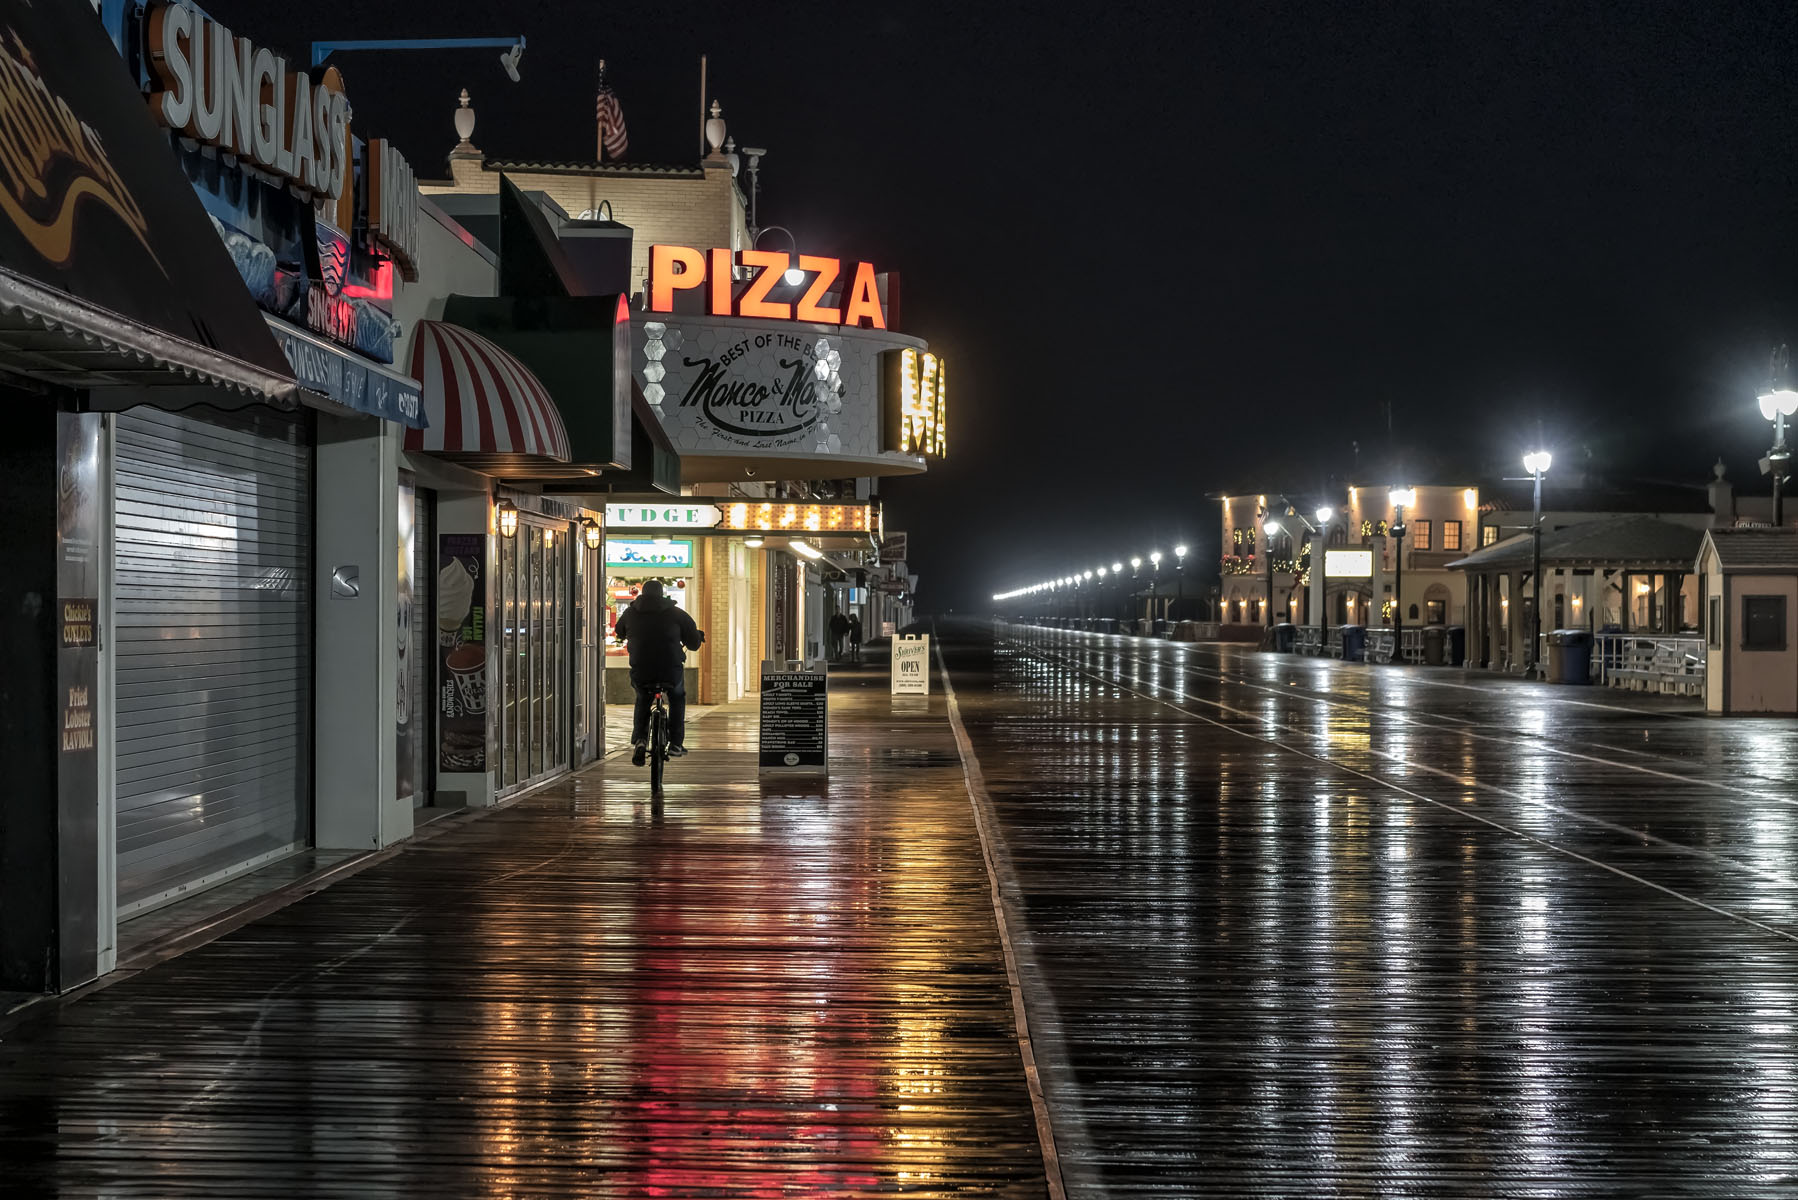 """Ocean City, New Jersey, December 2018   Archival pigment print  11.25"""" x 16.75""""  $300  Click image to enlarge   Inquire."""